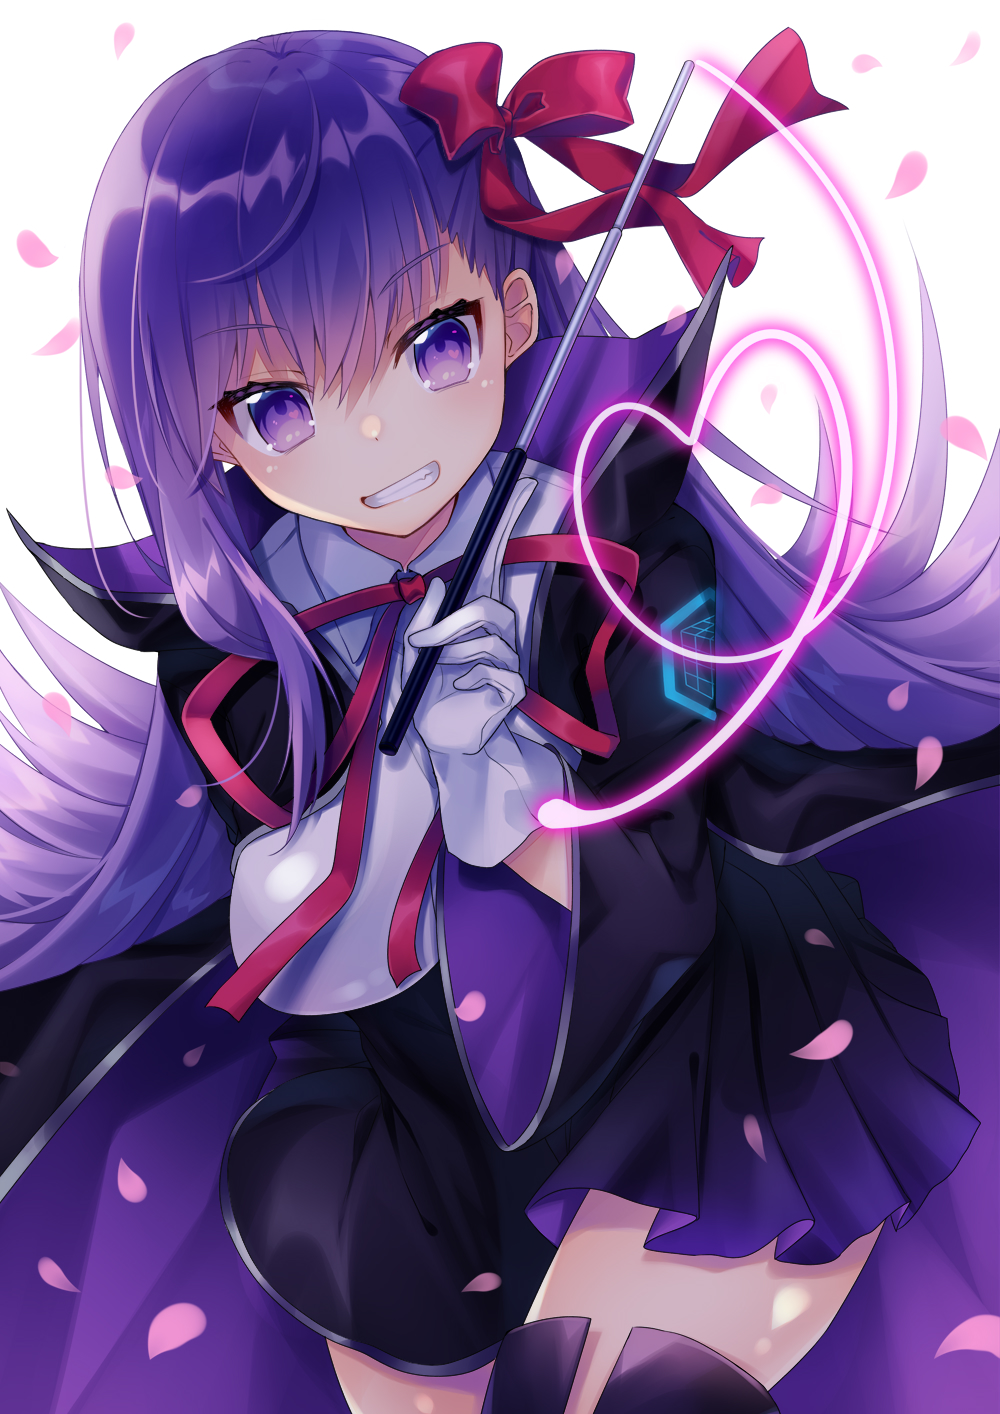 1girl bb_(fate)_(all) bb_(fate/extra_ccc) breasts eyebrows_visible_through_hair fate/extra fate/extra_ccc fate/grand_order fate_(series) gloves hair_ribbon highres holding holding_wand kusada_souta large_breasts long_hair long_sleeves looking_at_viewer purple_hair red_ribbon ribbon smile solo violet_eyes wand white_gloves